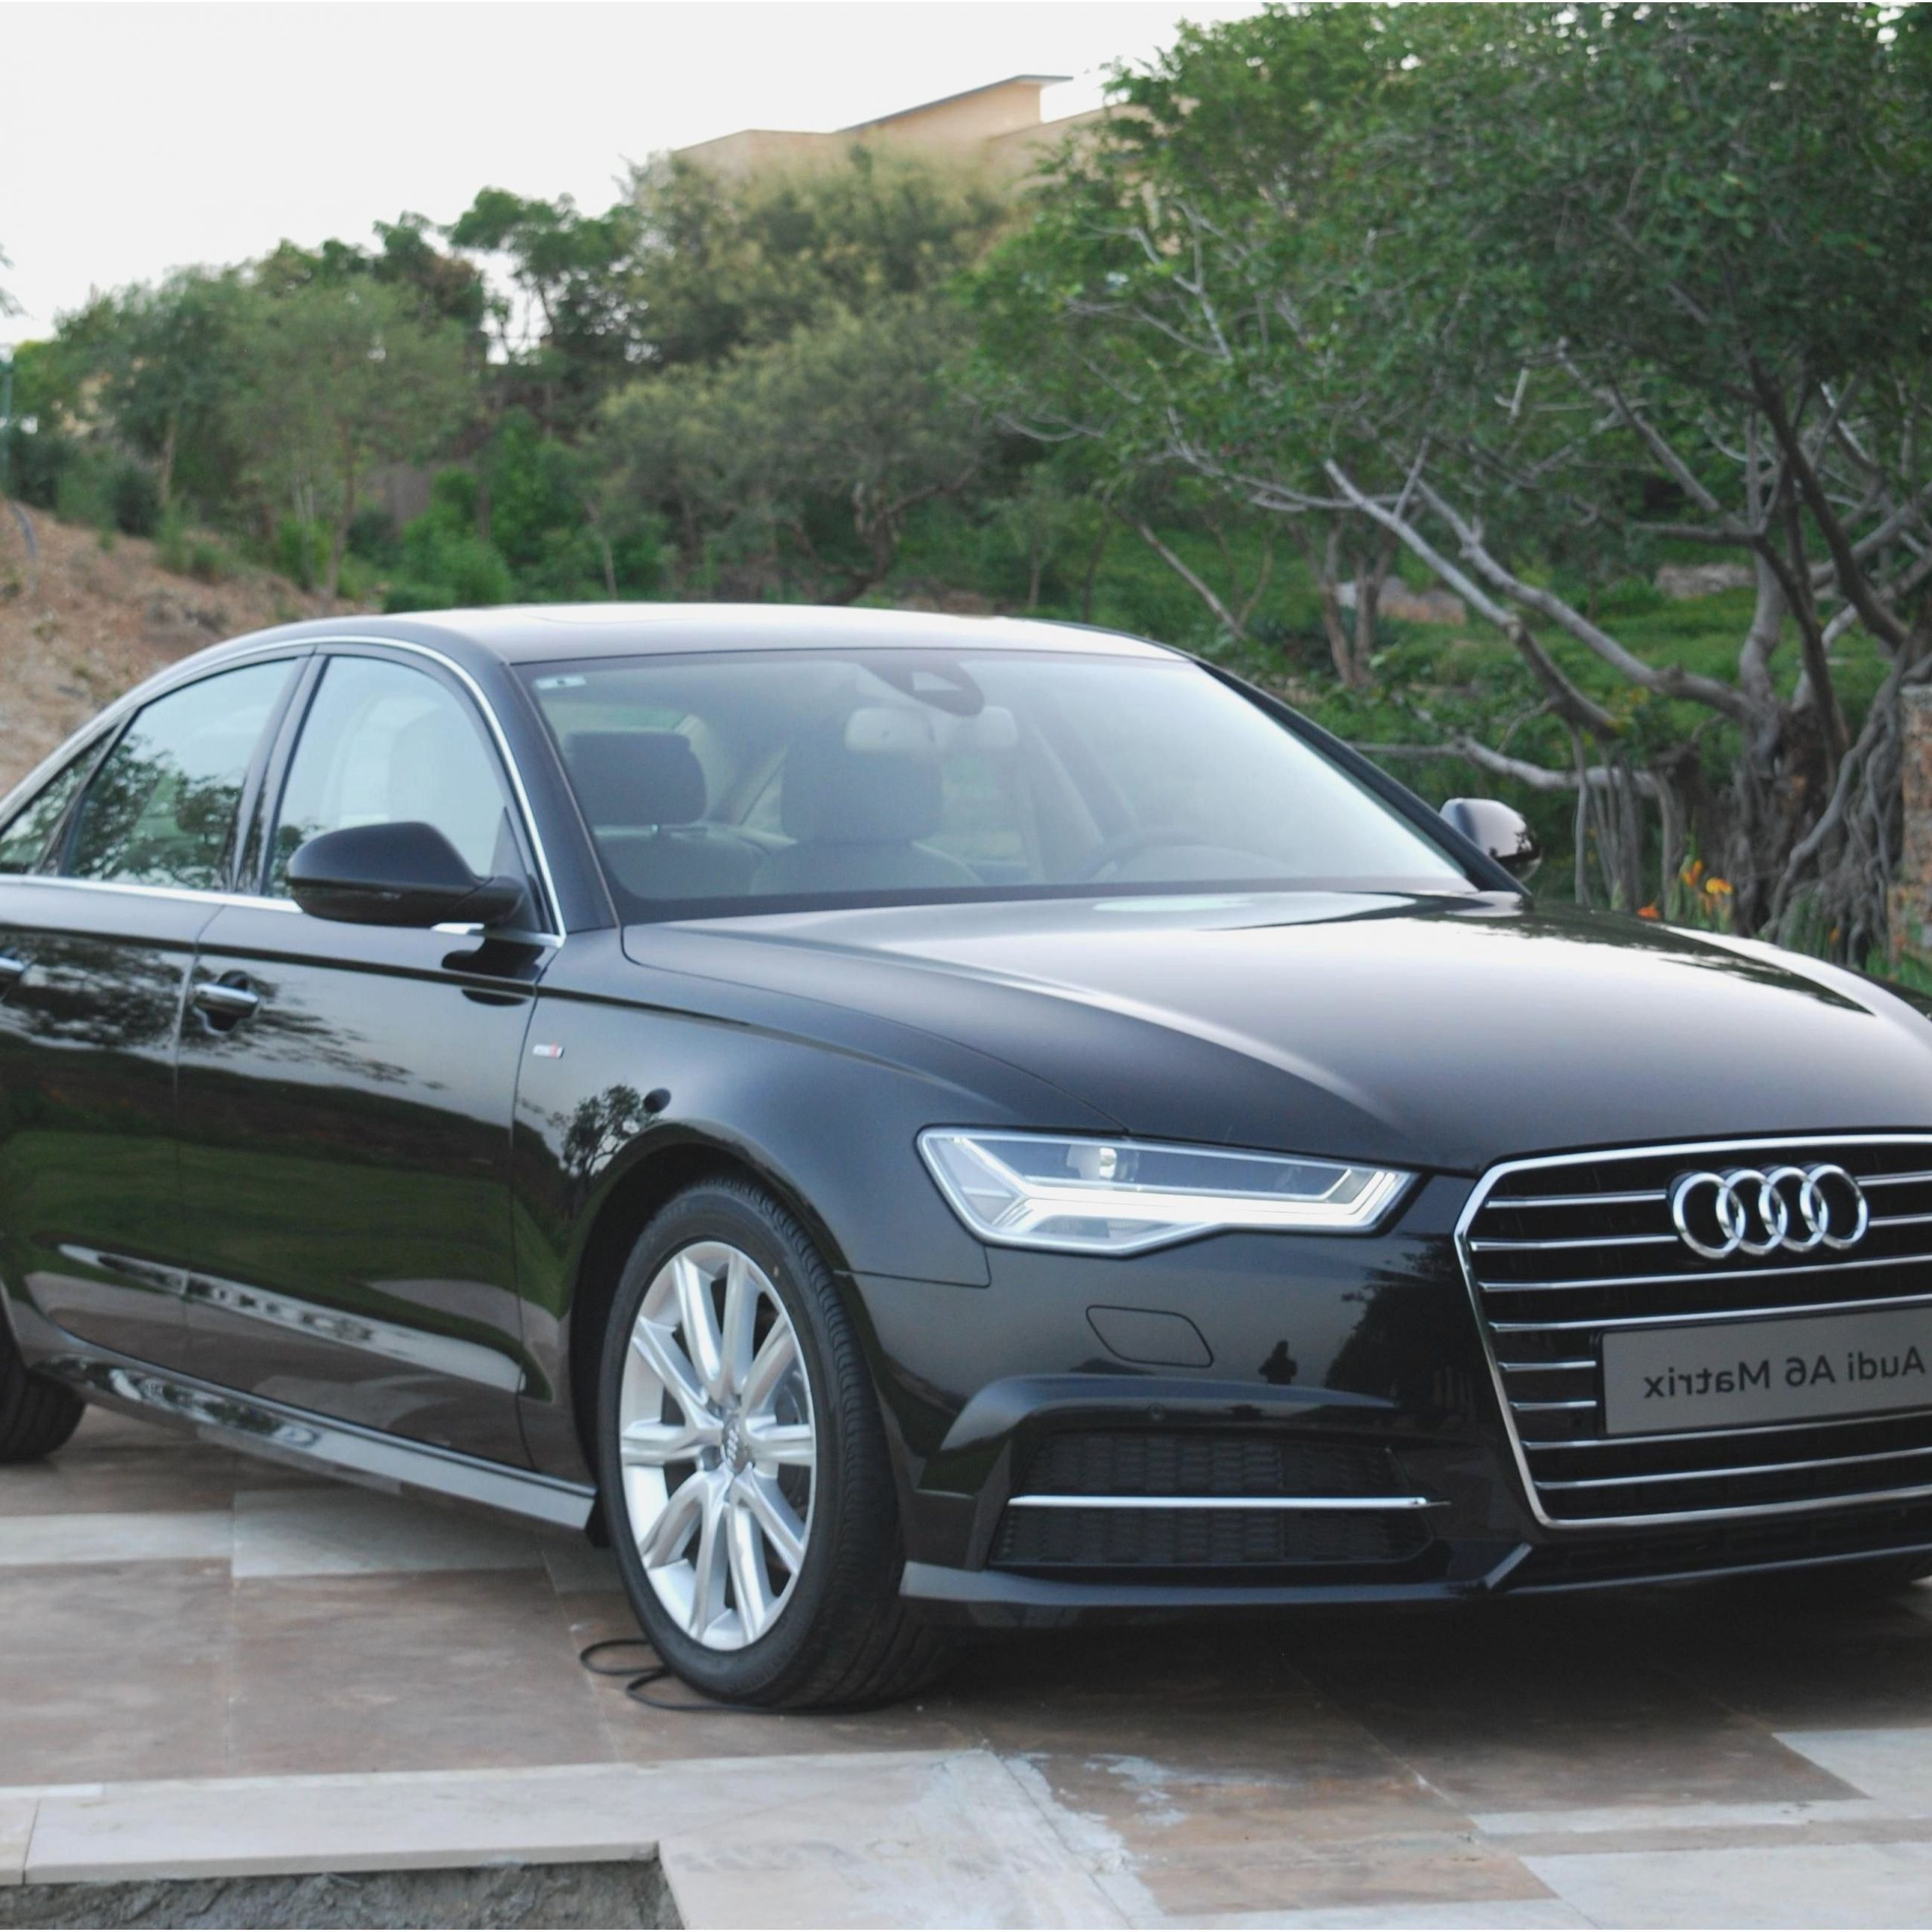 Audi A8 For Sale Inspirational 2020 Audi Rs5 Lovely 2020 Audi A8 2020 Audi S5 Sportback In 2020 Audi S5 Audi A8 Audi